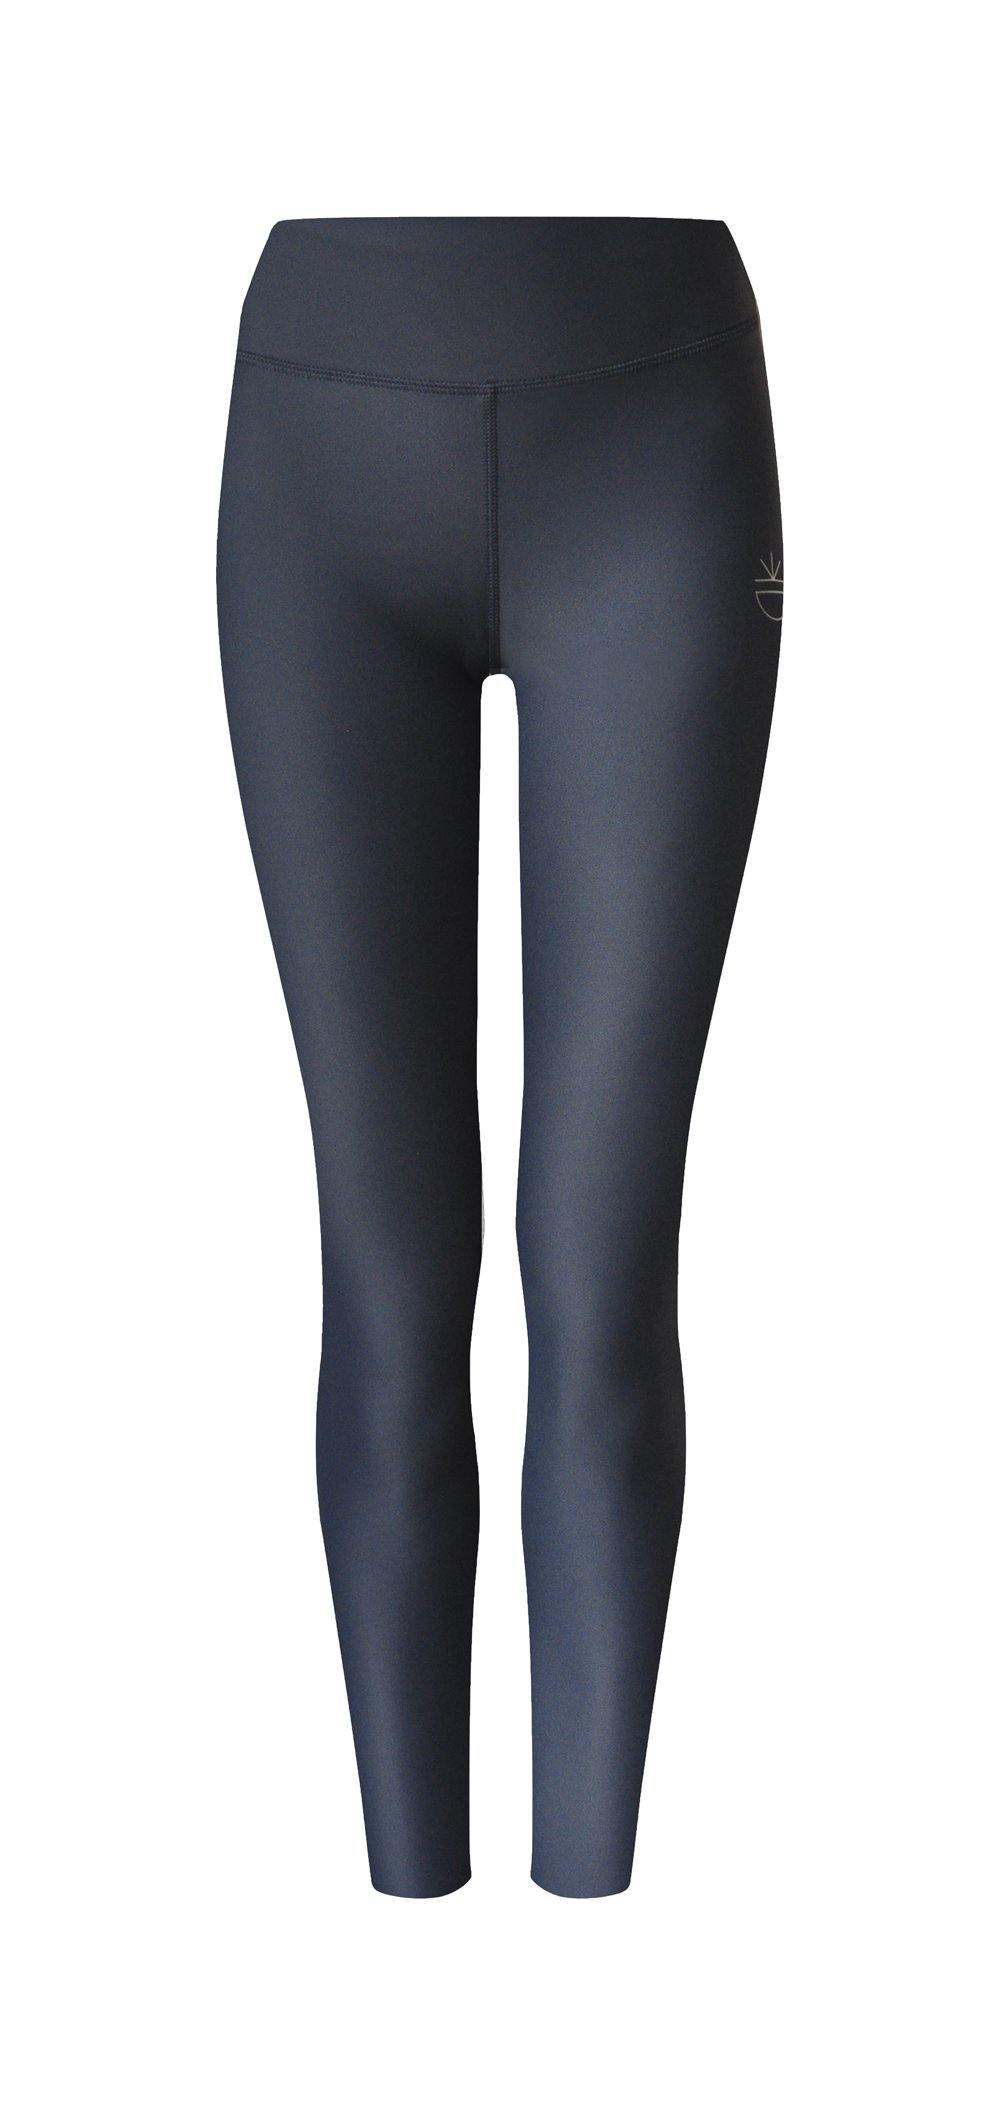 NEW Walk Free Leggings - BESONNEN mindful fashion sustainable - Color:Grau